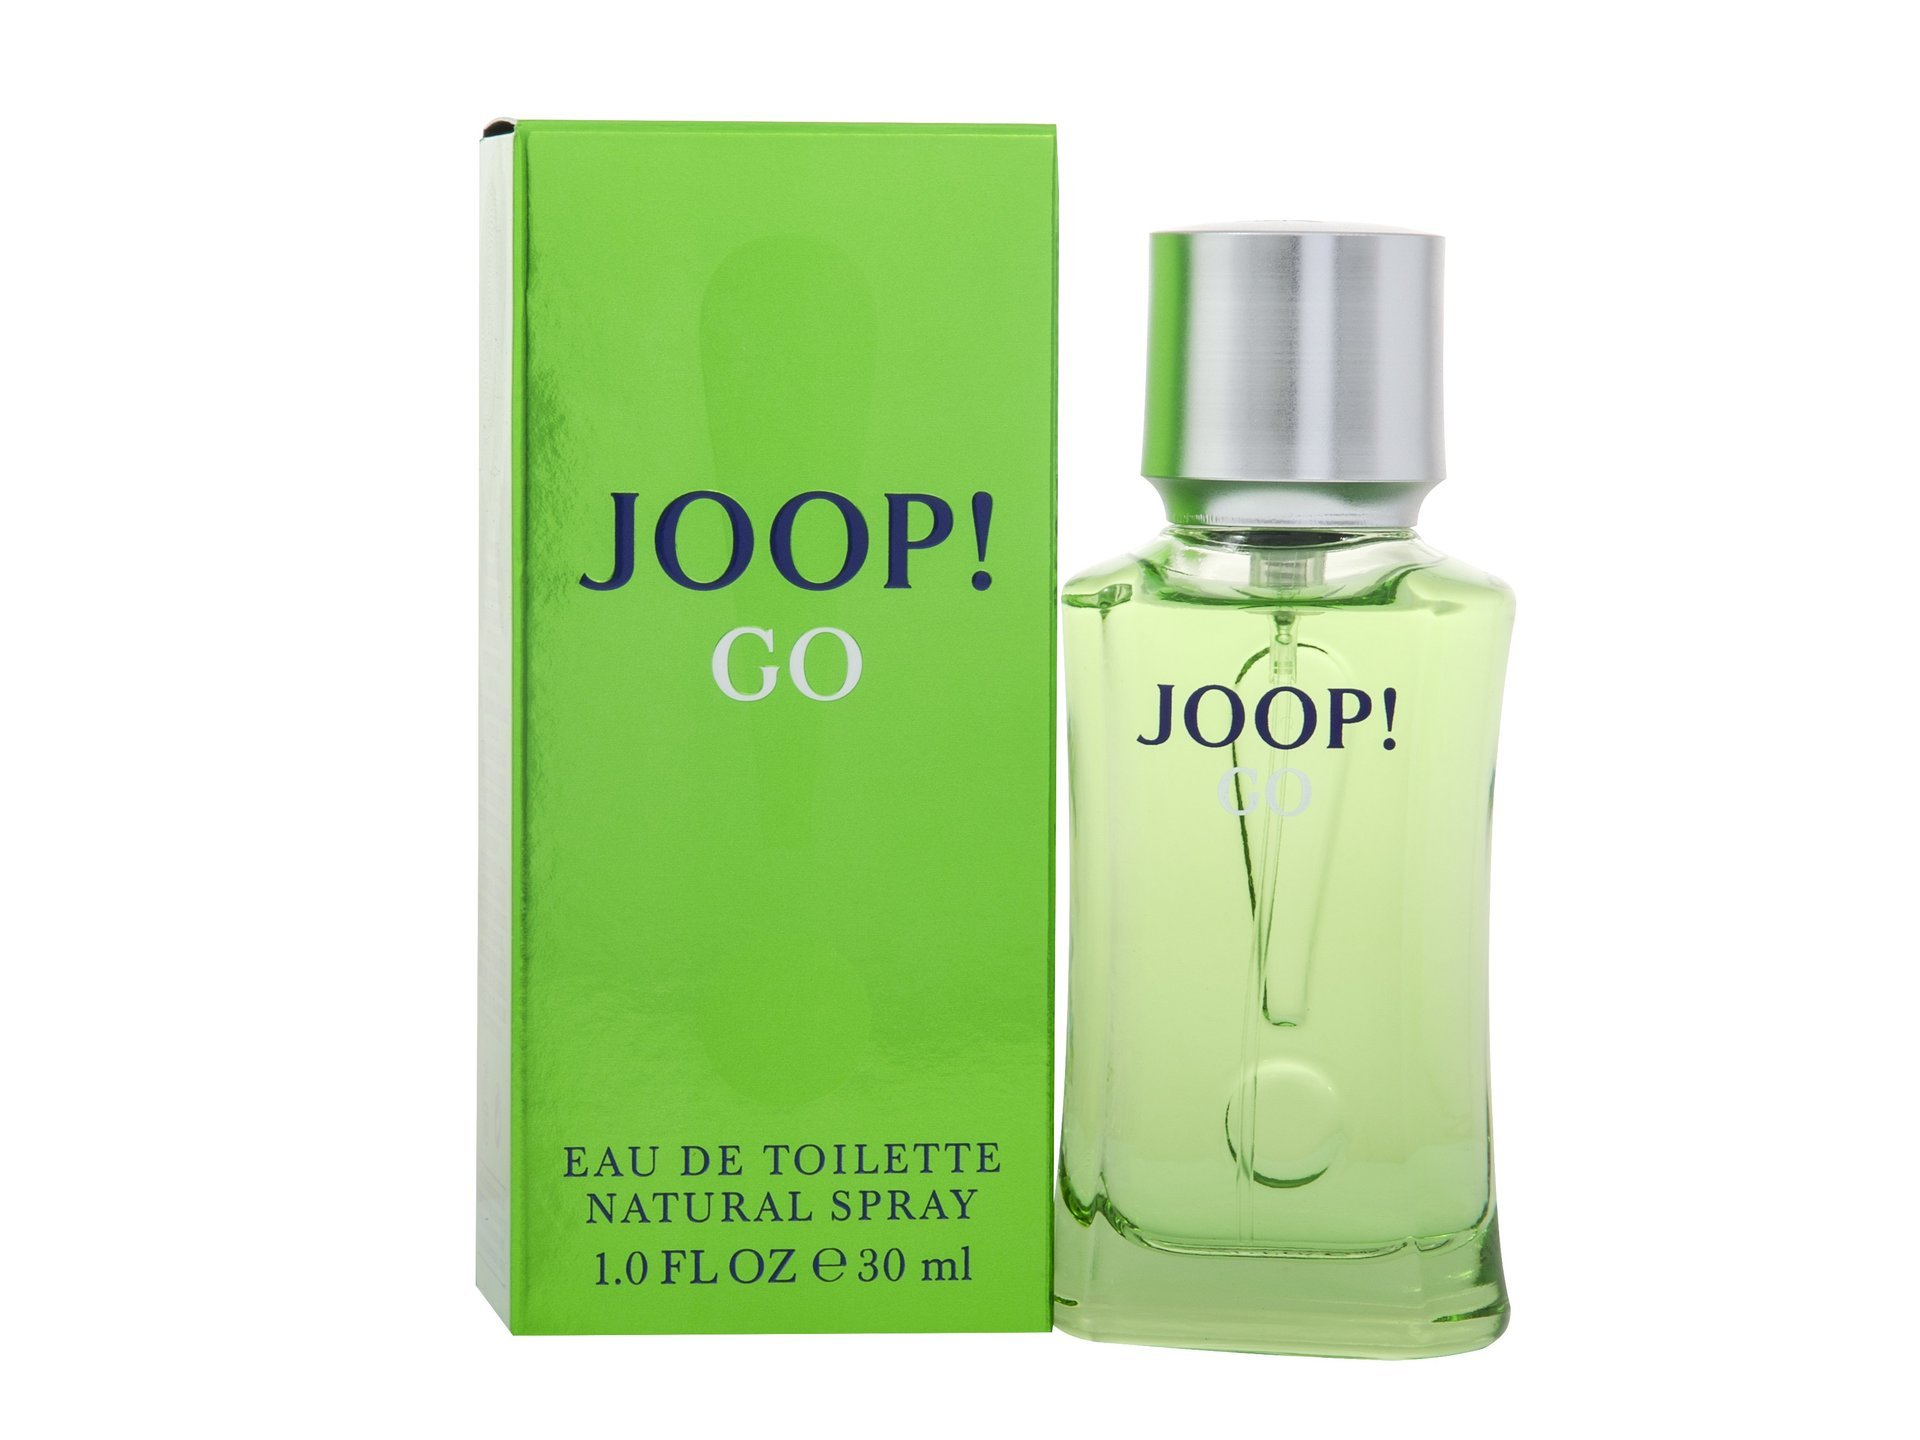 Joop Go M Eau de Toilette 30ml Spray